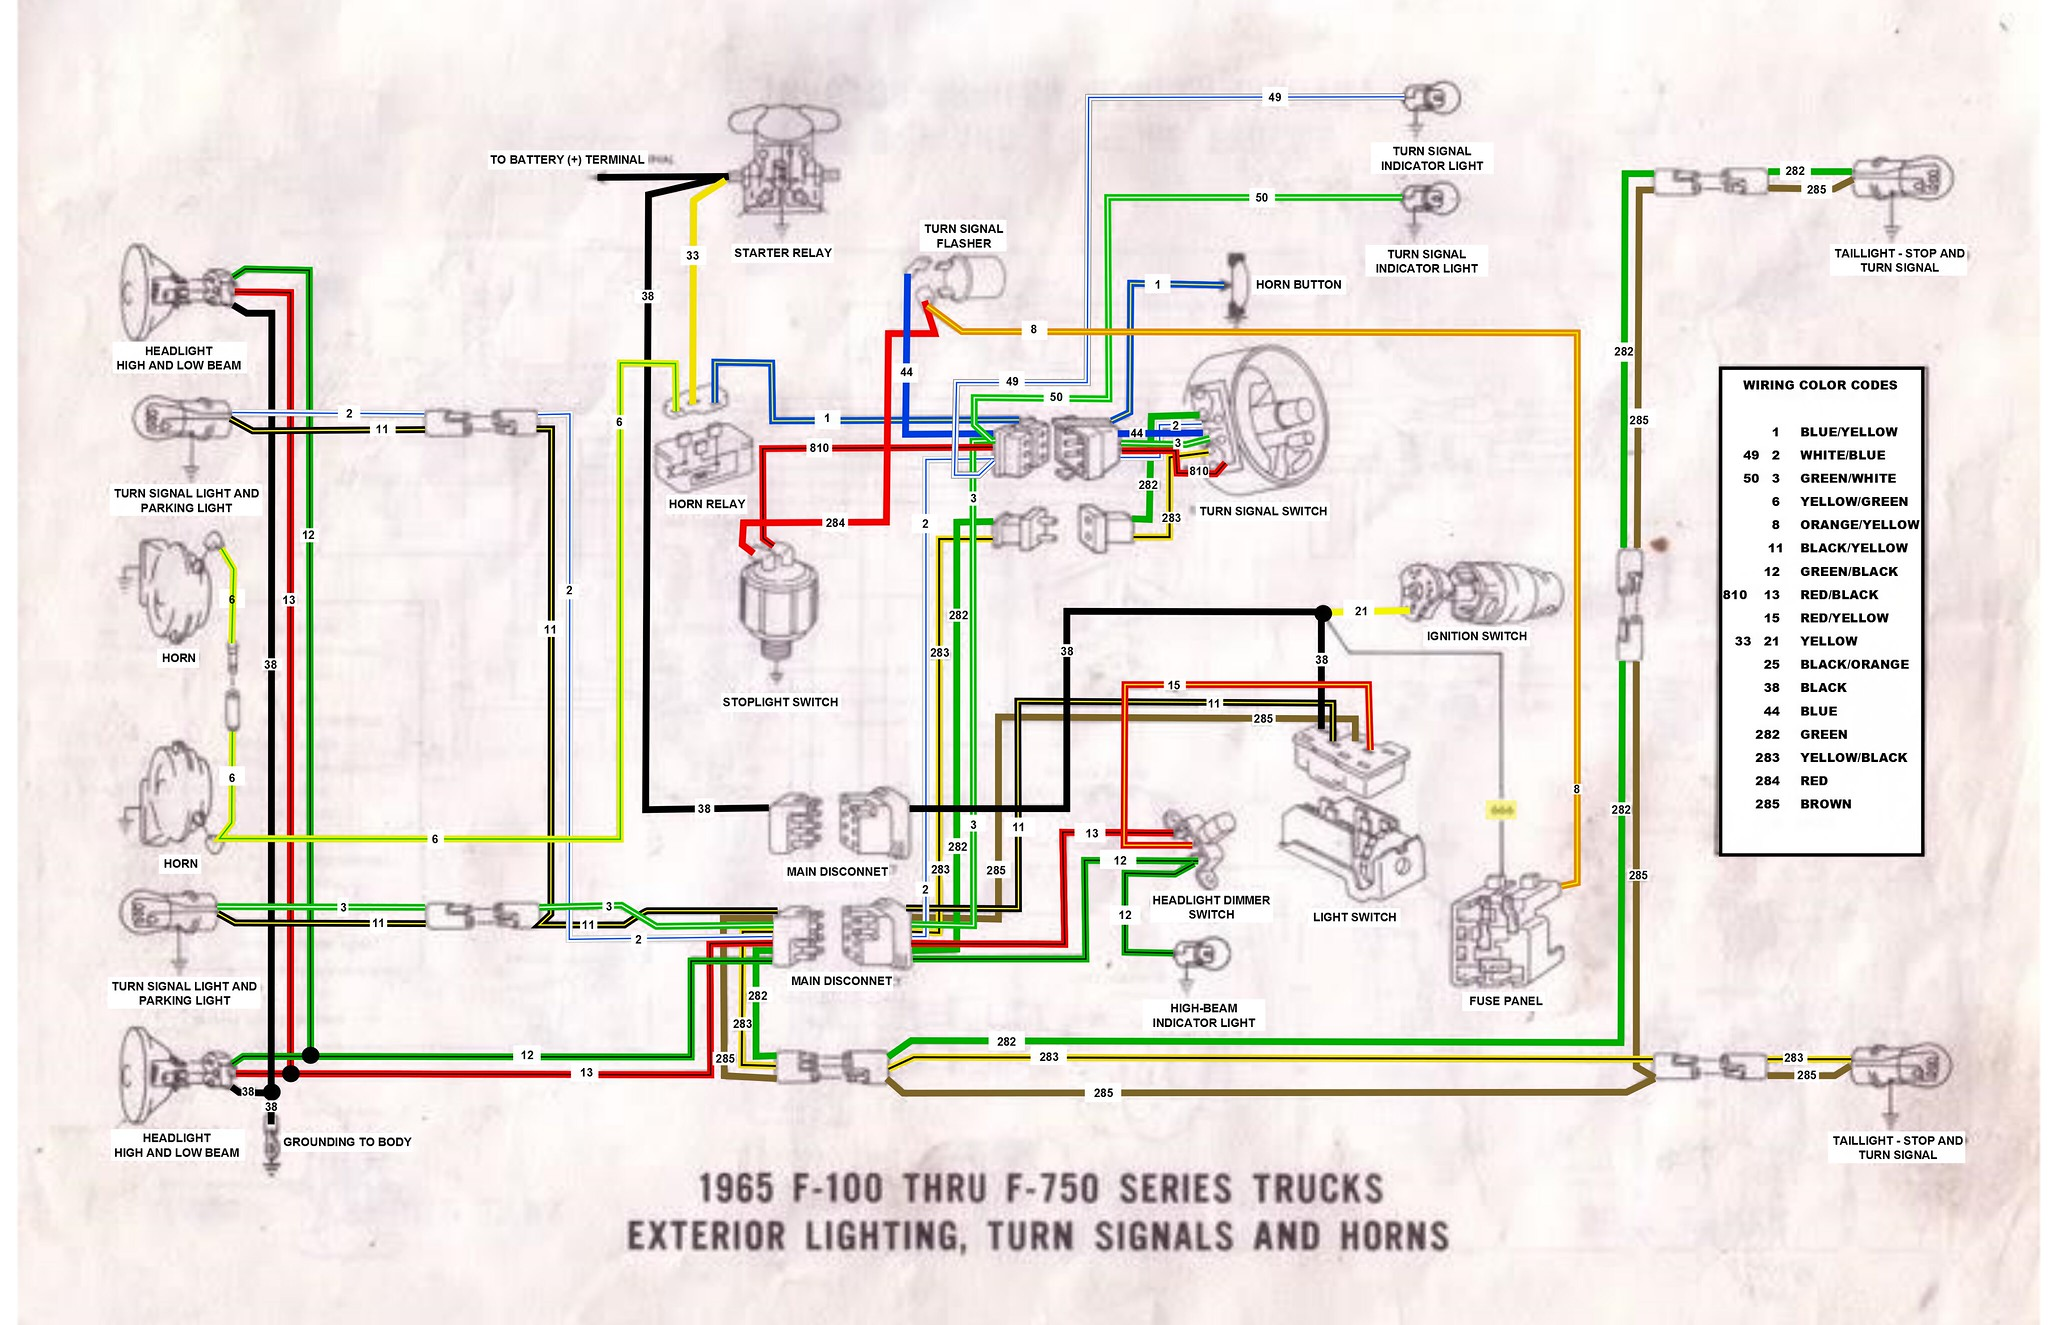 wrg 2077] f750 wiring diagram 2001 Ford F750 Ignition Wire Schematic